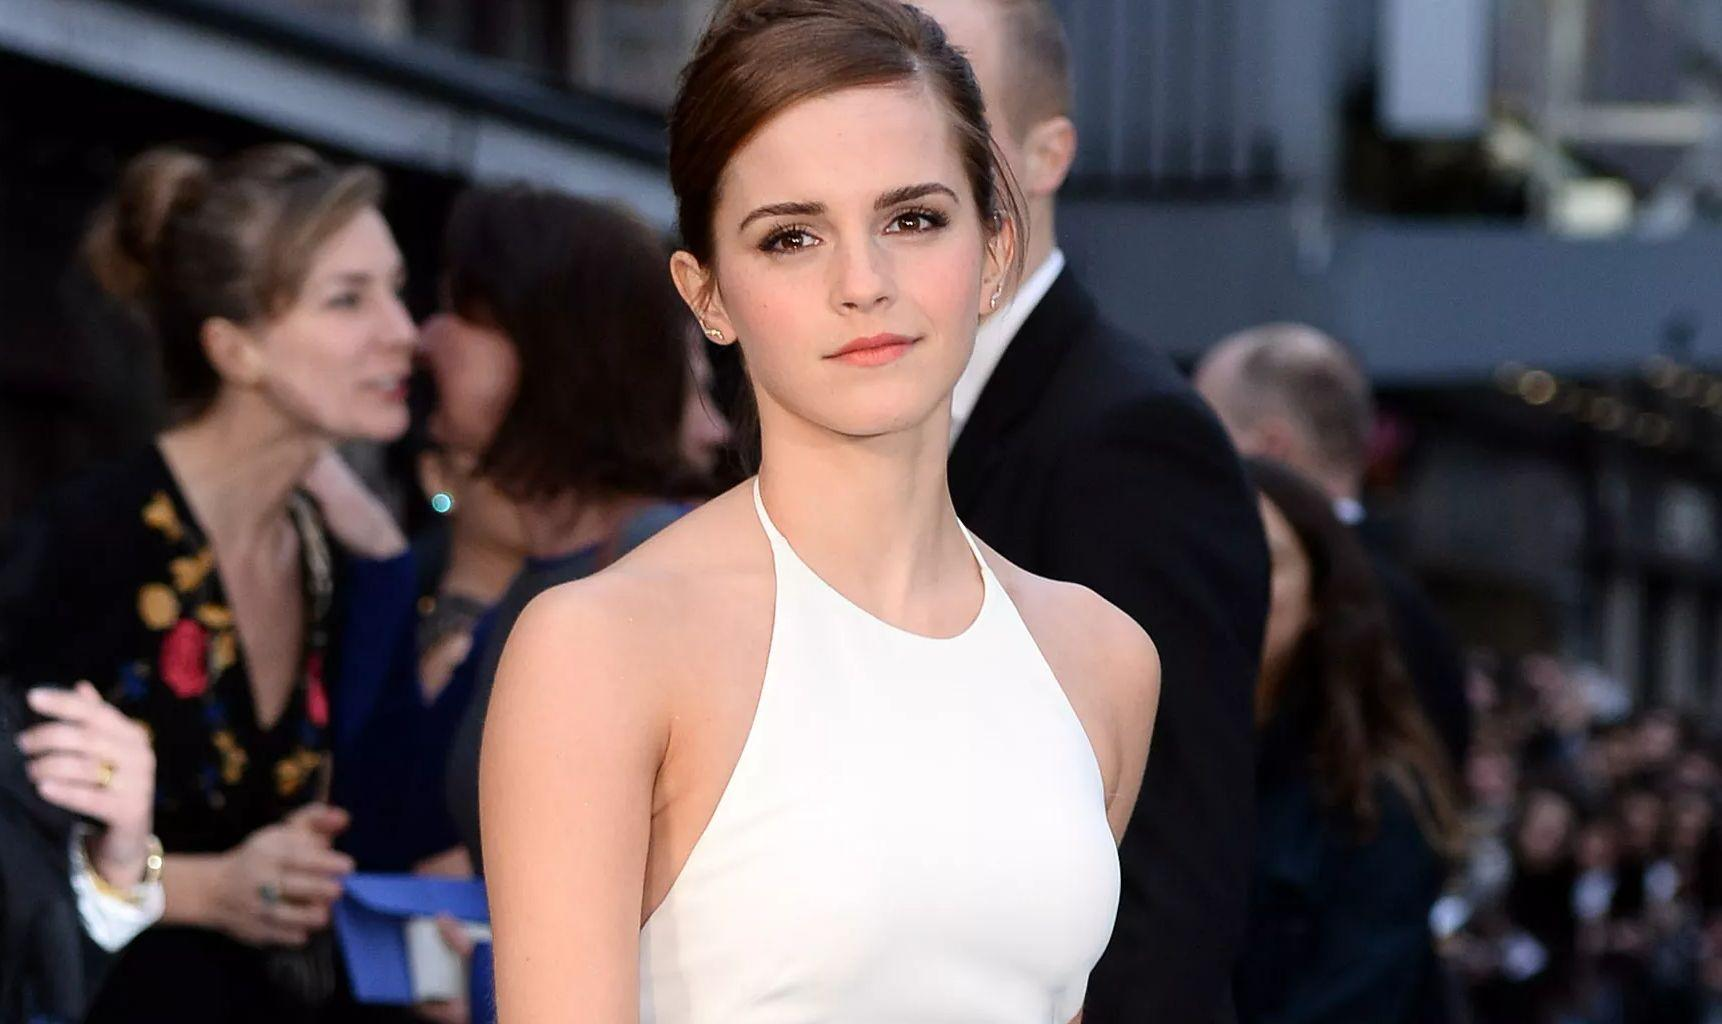 Emma Watson Rumored To Be Retiring From Acting - Her Manager Responds!